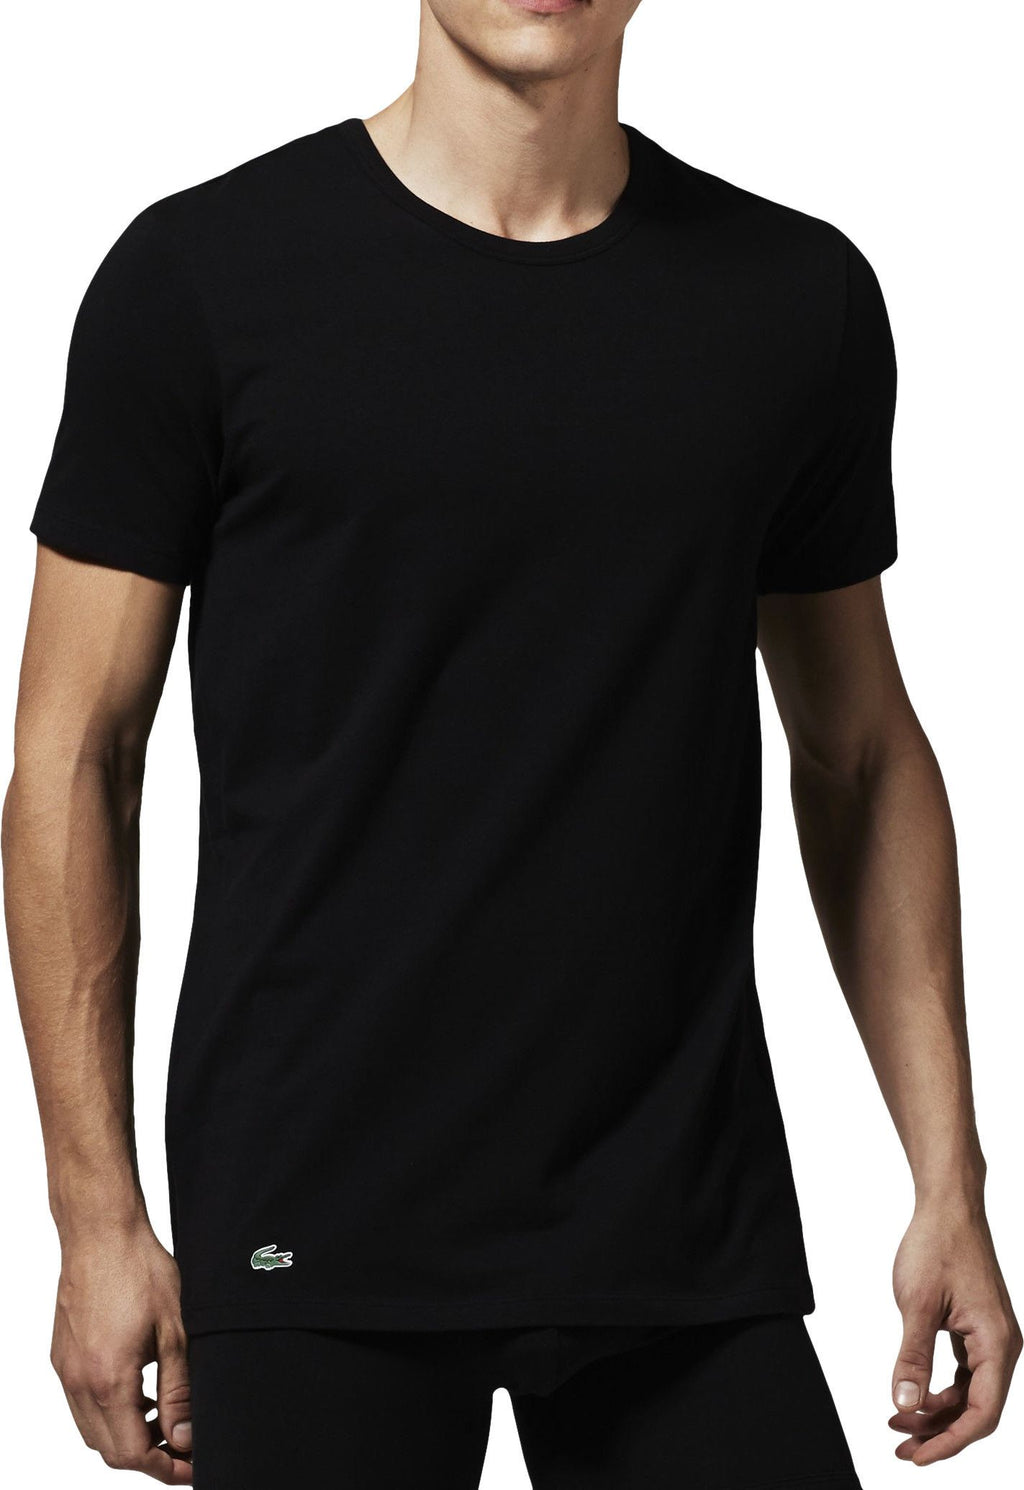 Lacoste 2 Pack Slim Fit T-Shirts Black